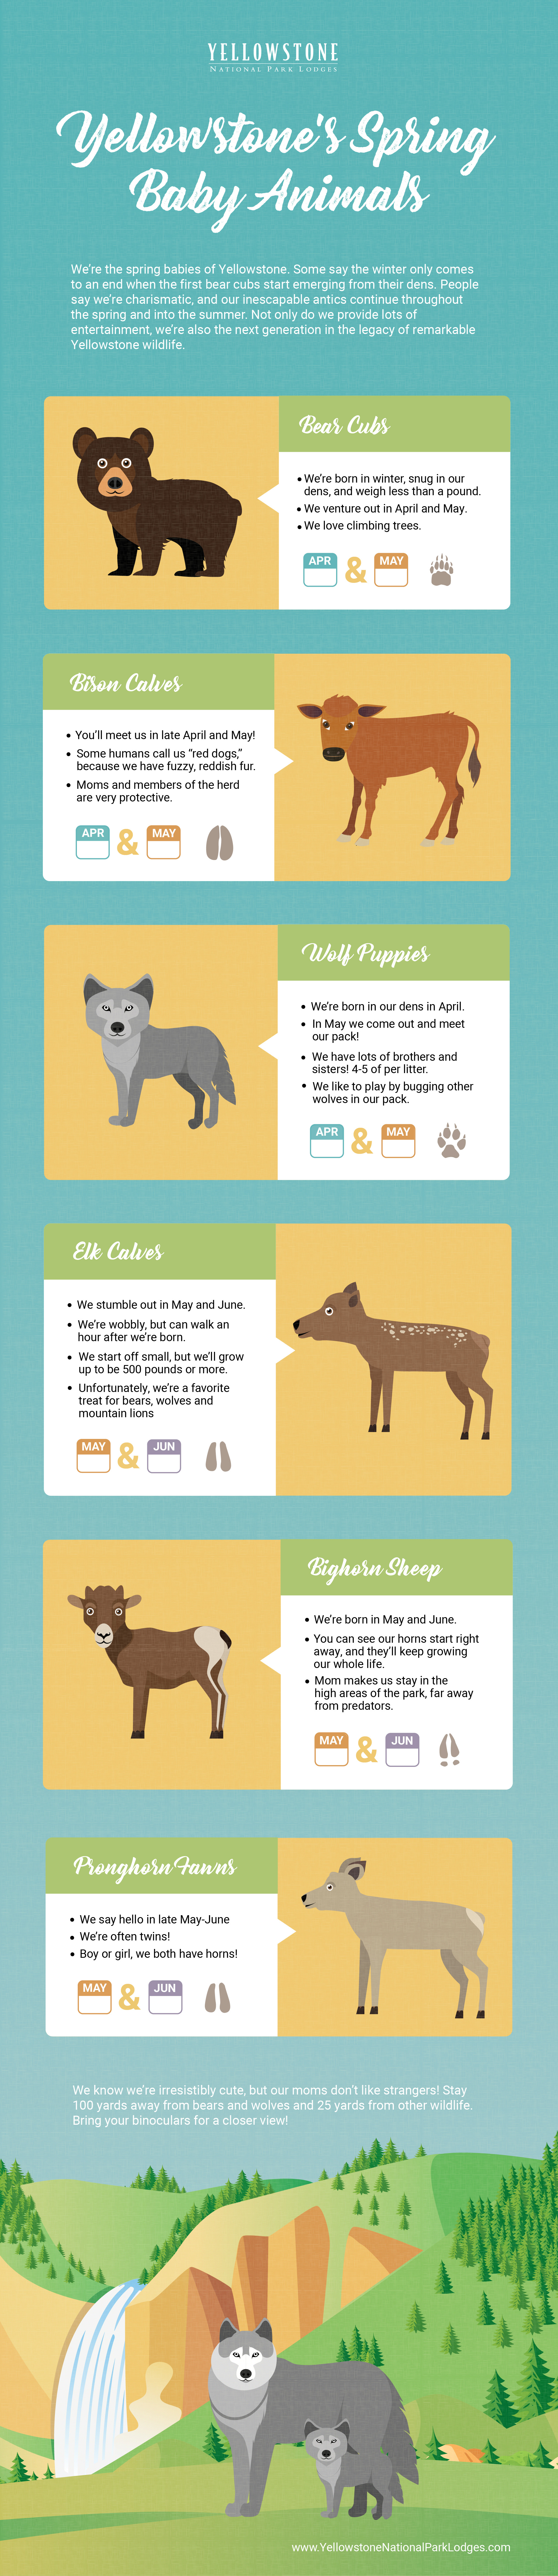 Yellowstone baby animals infographic